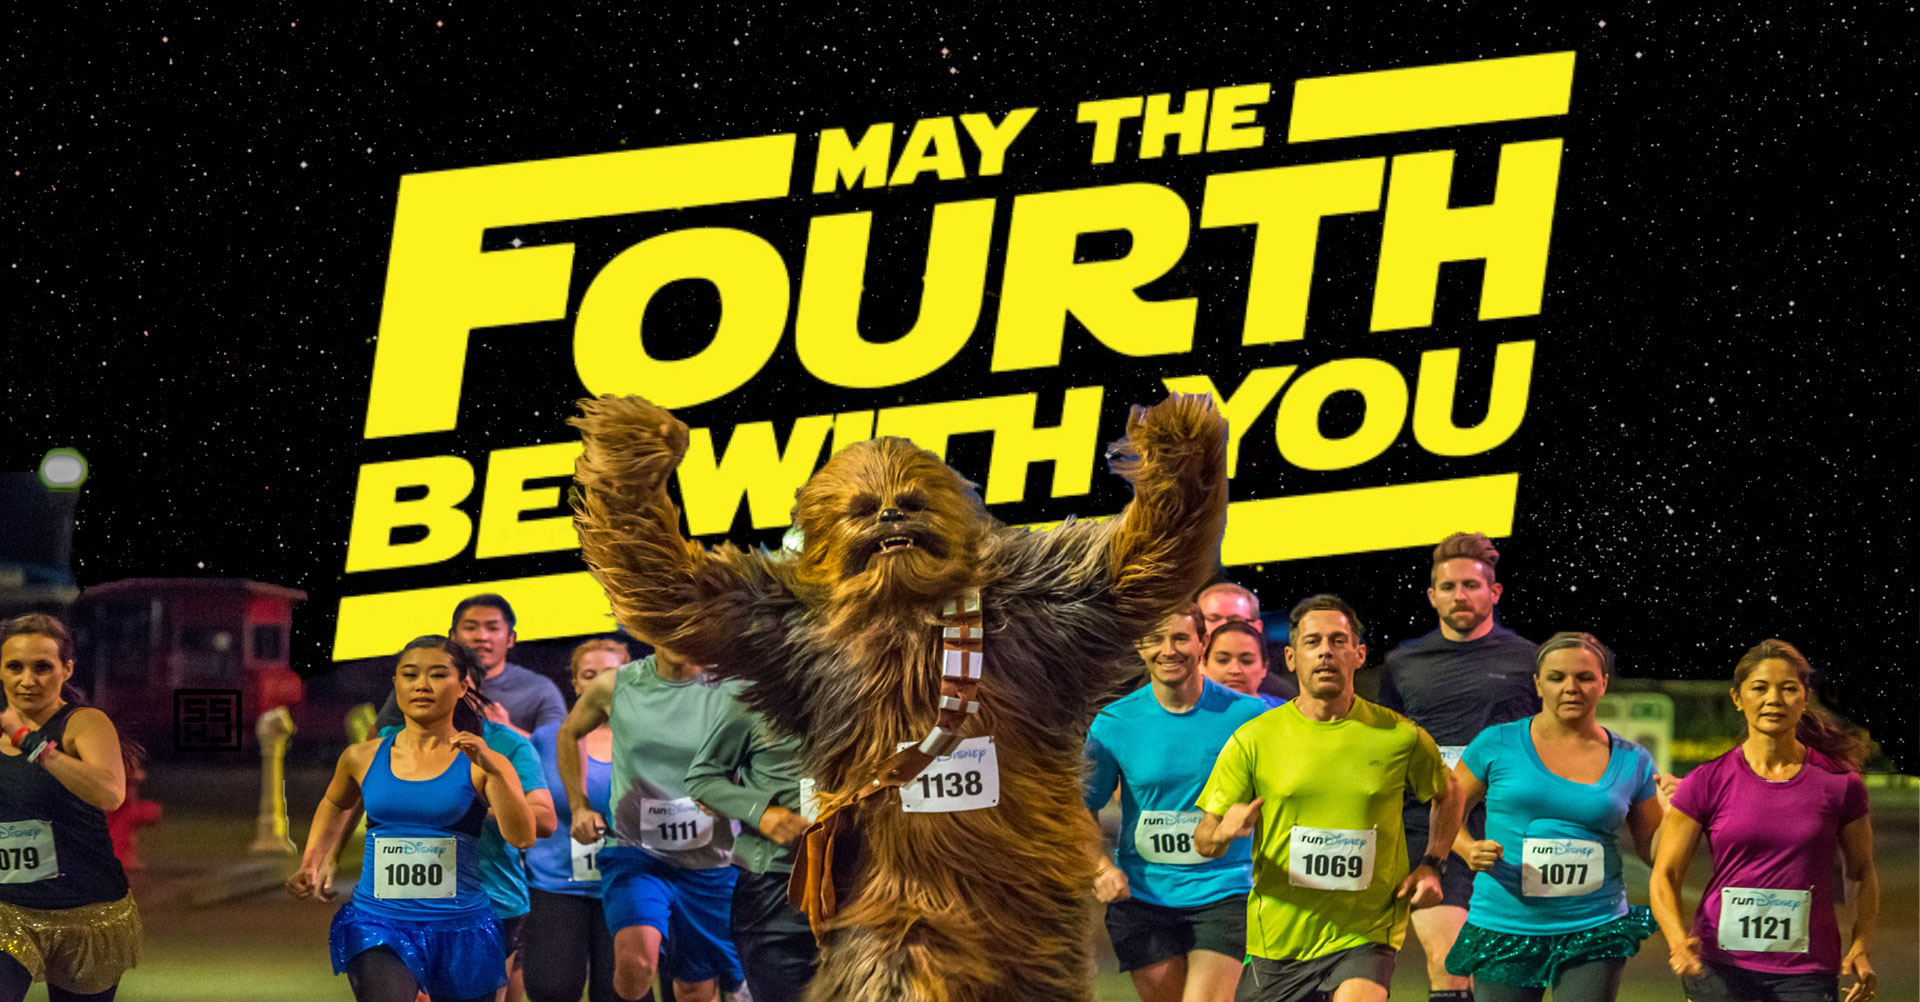 May Fourth Be With You